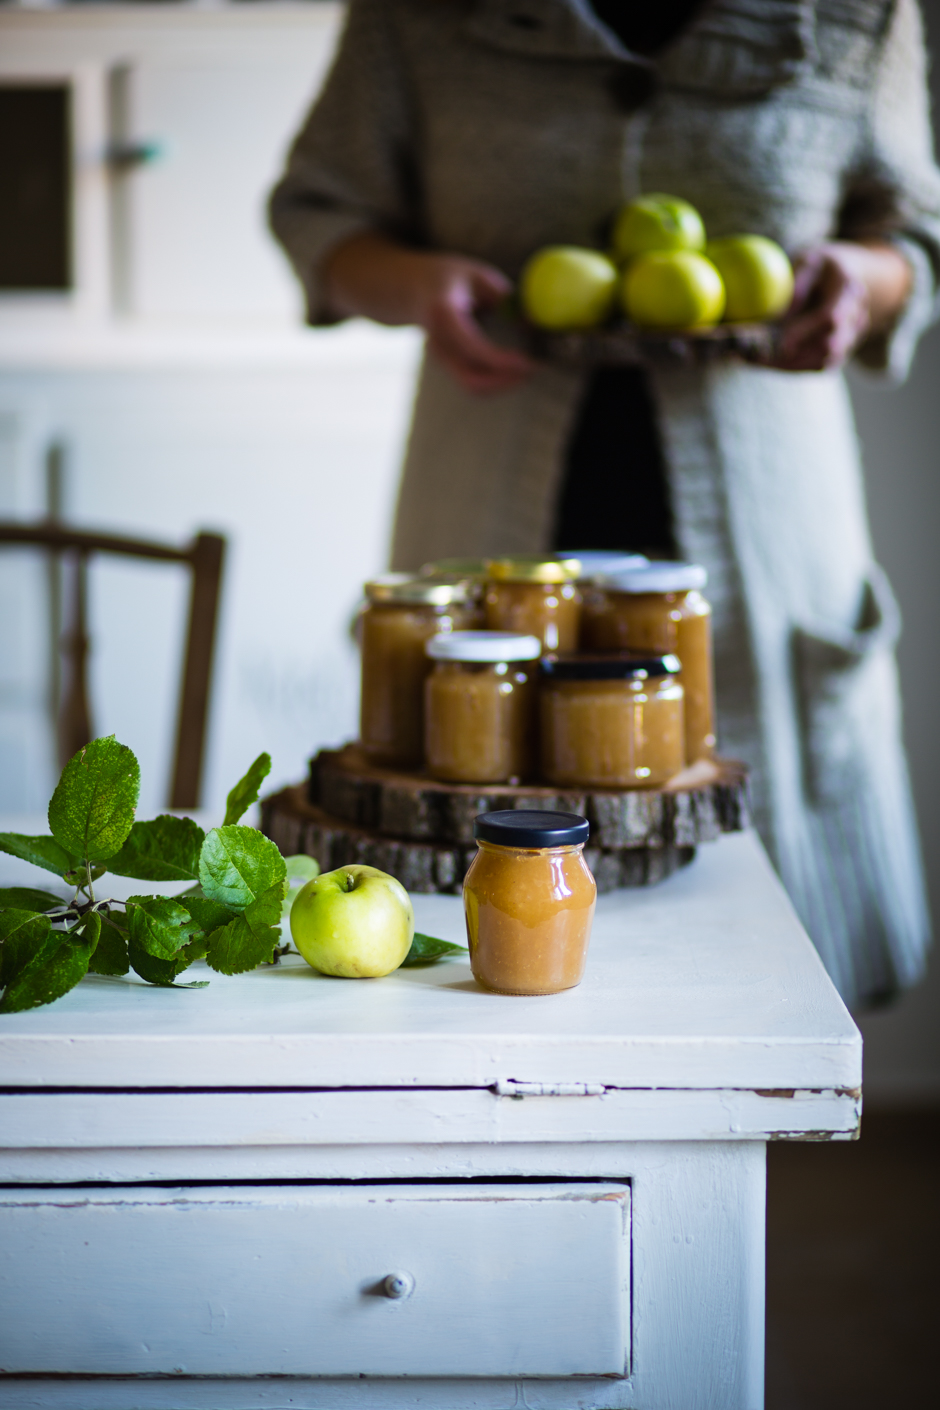 apple jam from the Taste of Memories Hungarian country kitchen www.tasteofmemories.com